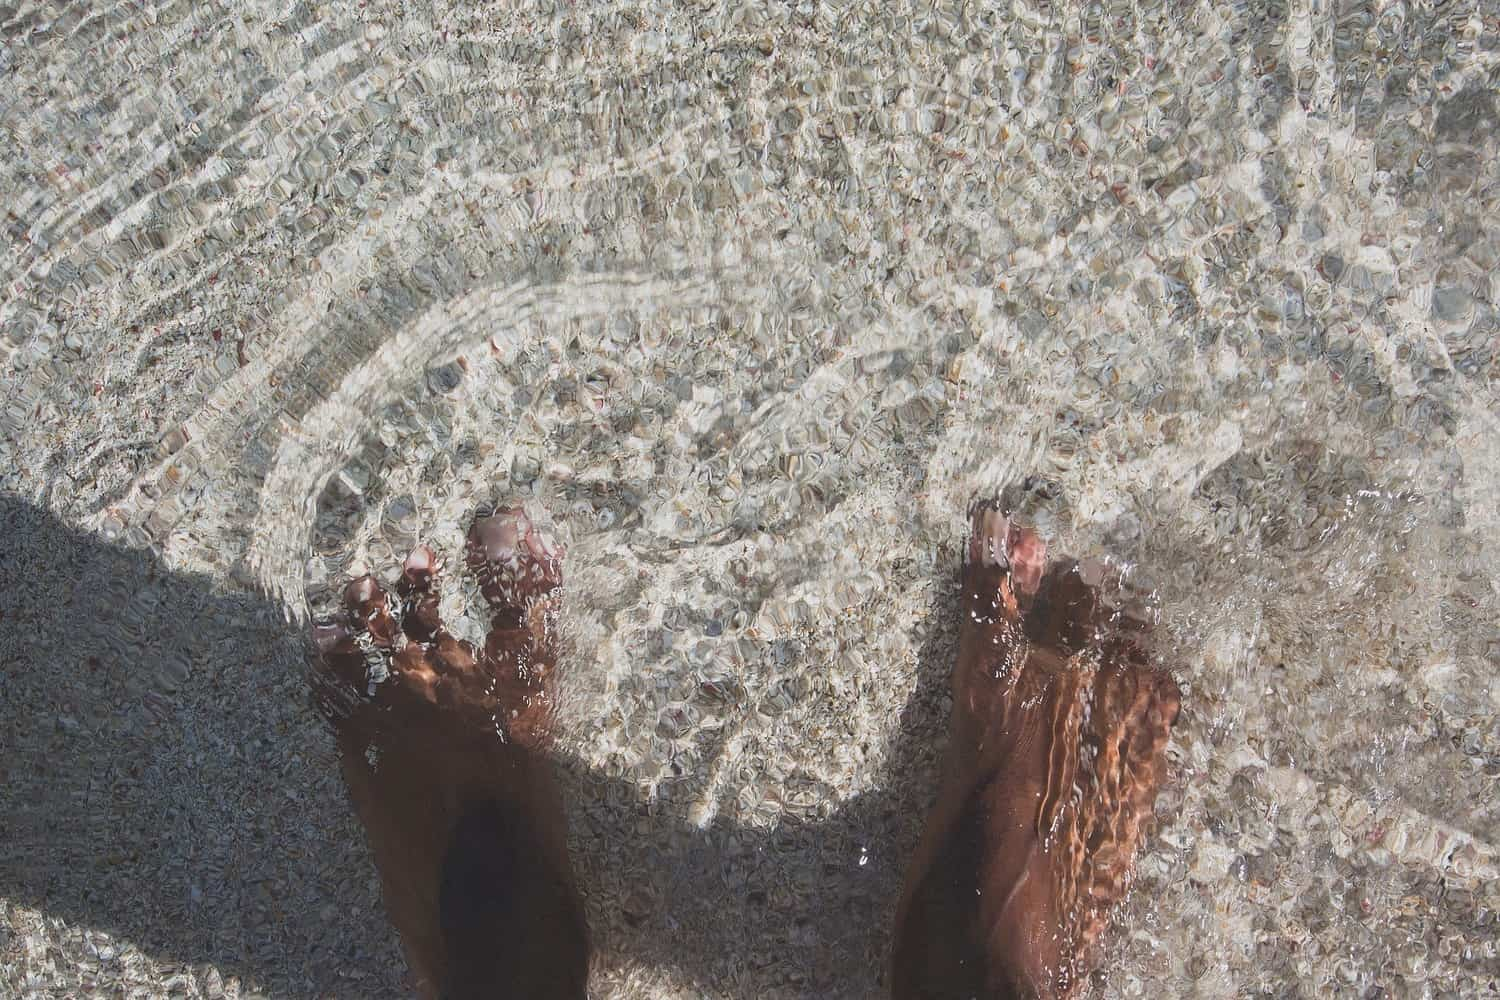 A man's feet in water on a sandy beach.